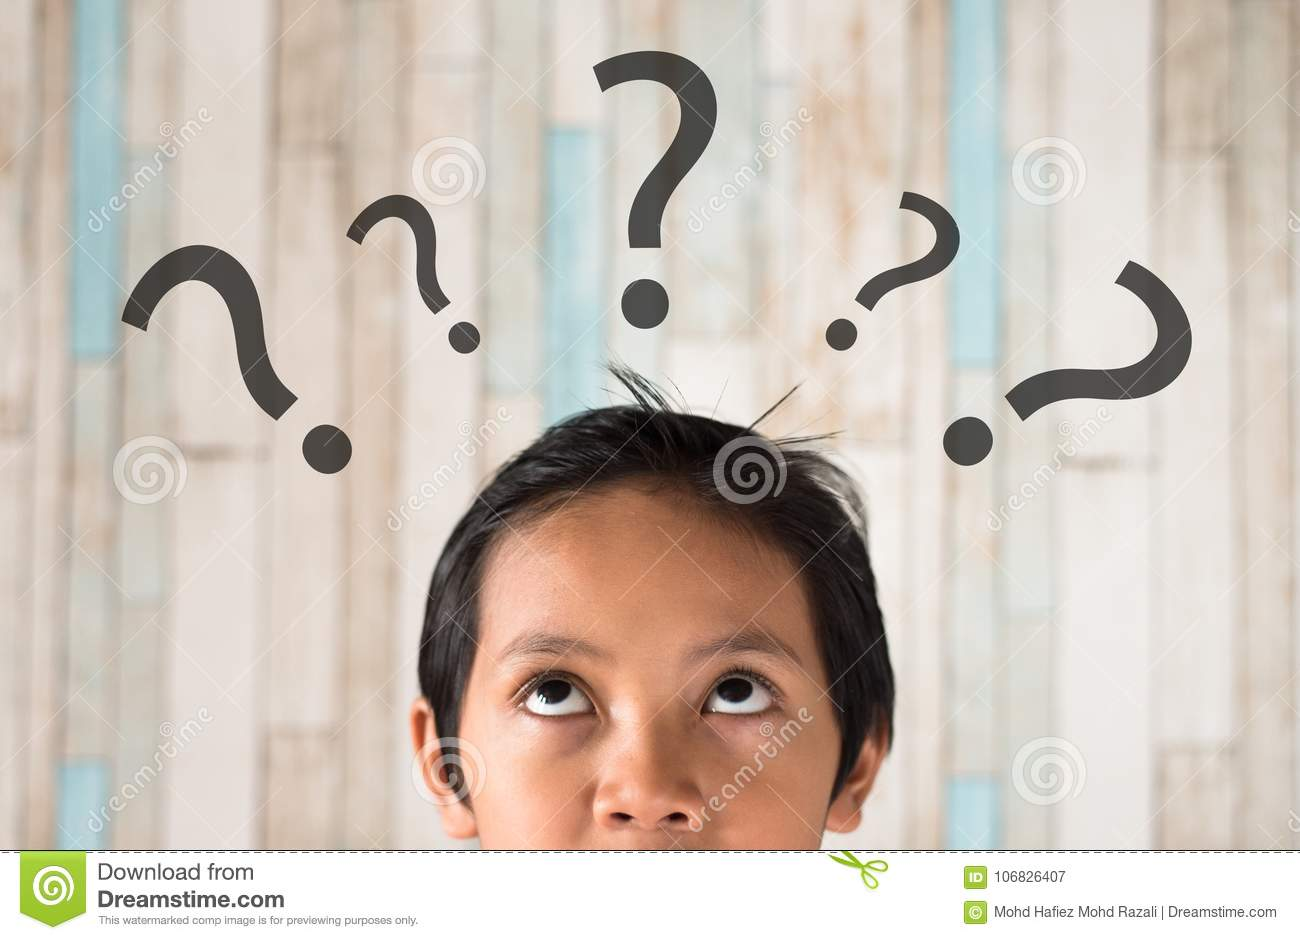 Young asian boy looking at question mark